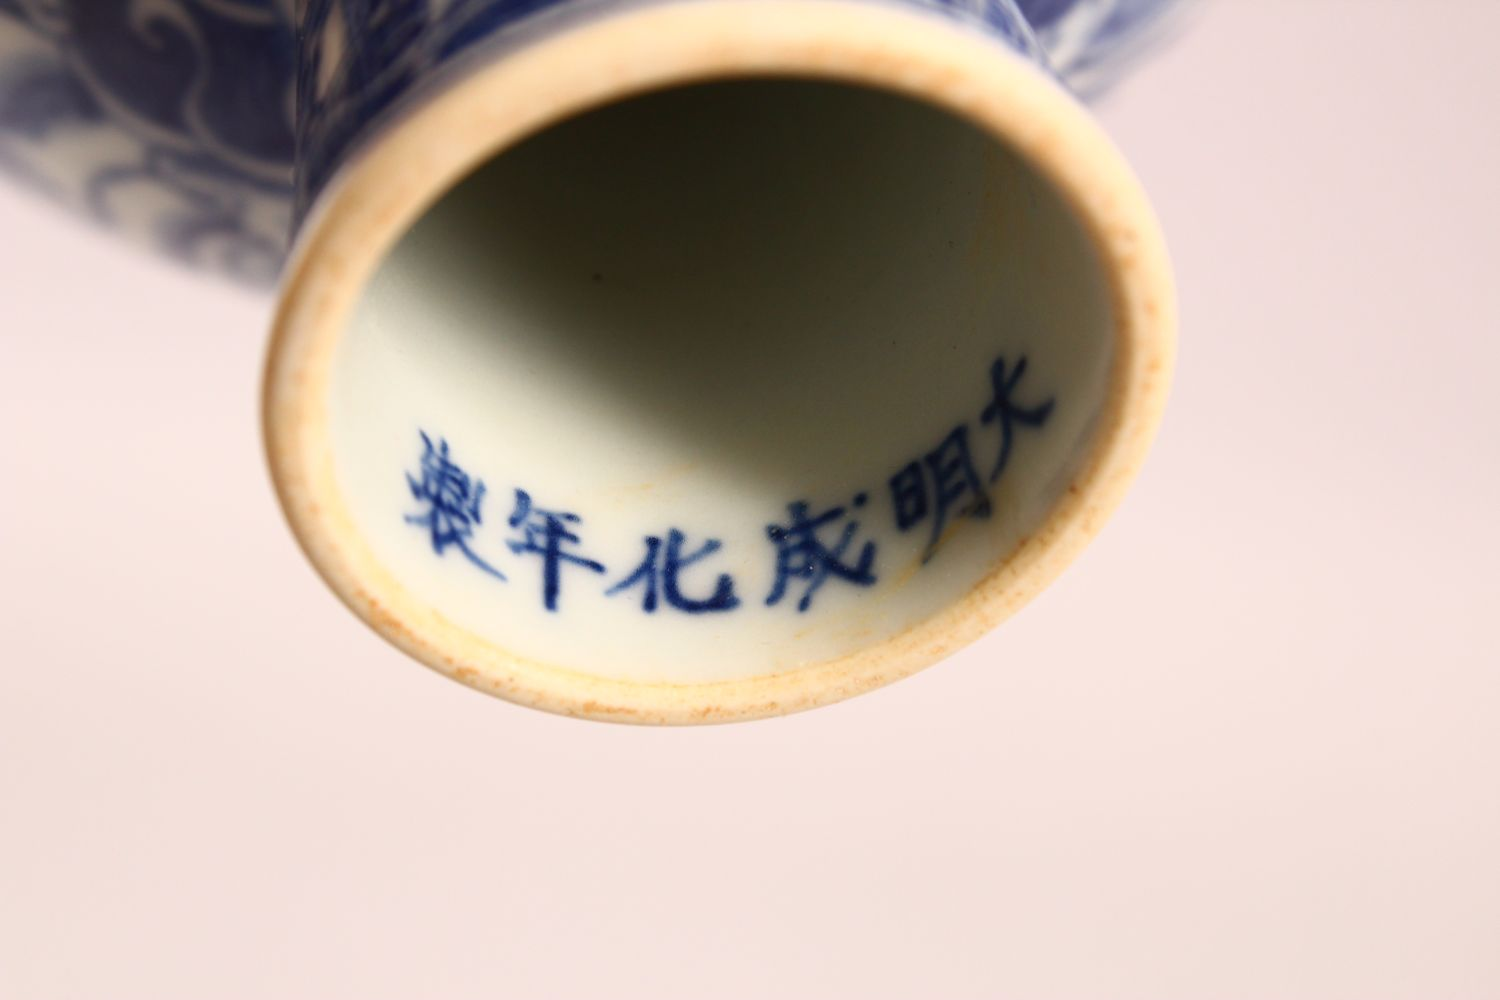 A CHINESE BLUE AND WHITE PORCELAIN STEM CUP, the bowl painted with fish amongst aquatic flora - Image 6 of 6